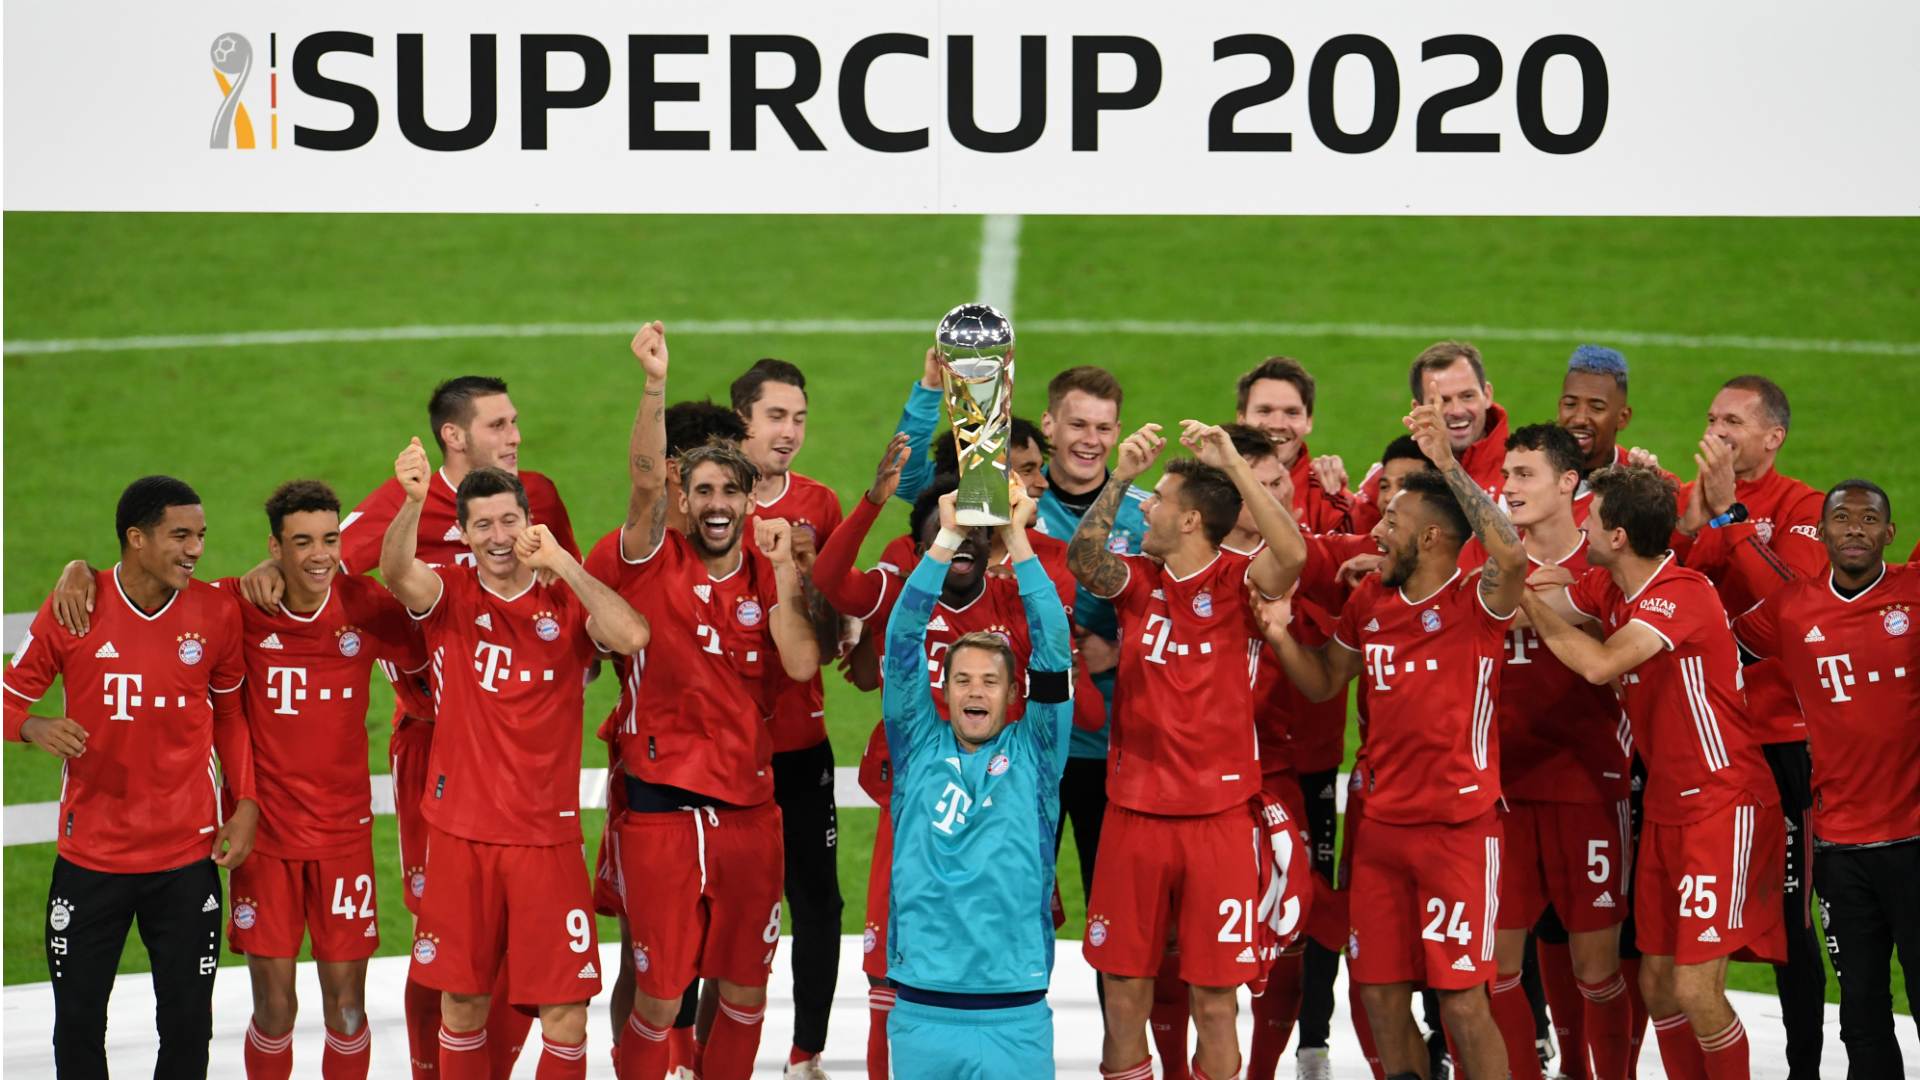 Bayern celebrate quintuple with Supercup win, but Dortmund fightback had Flick worried